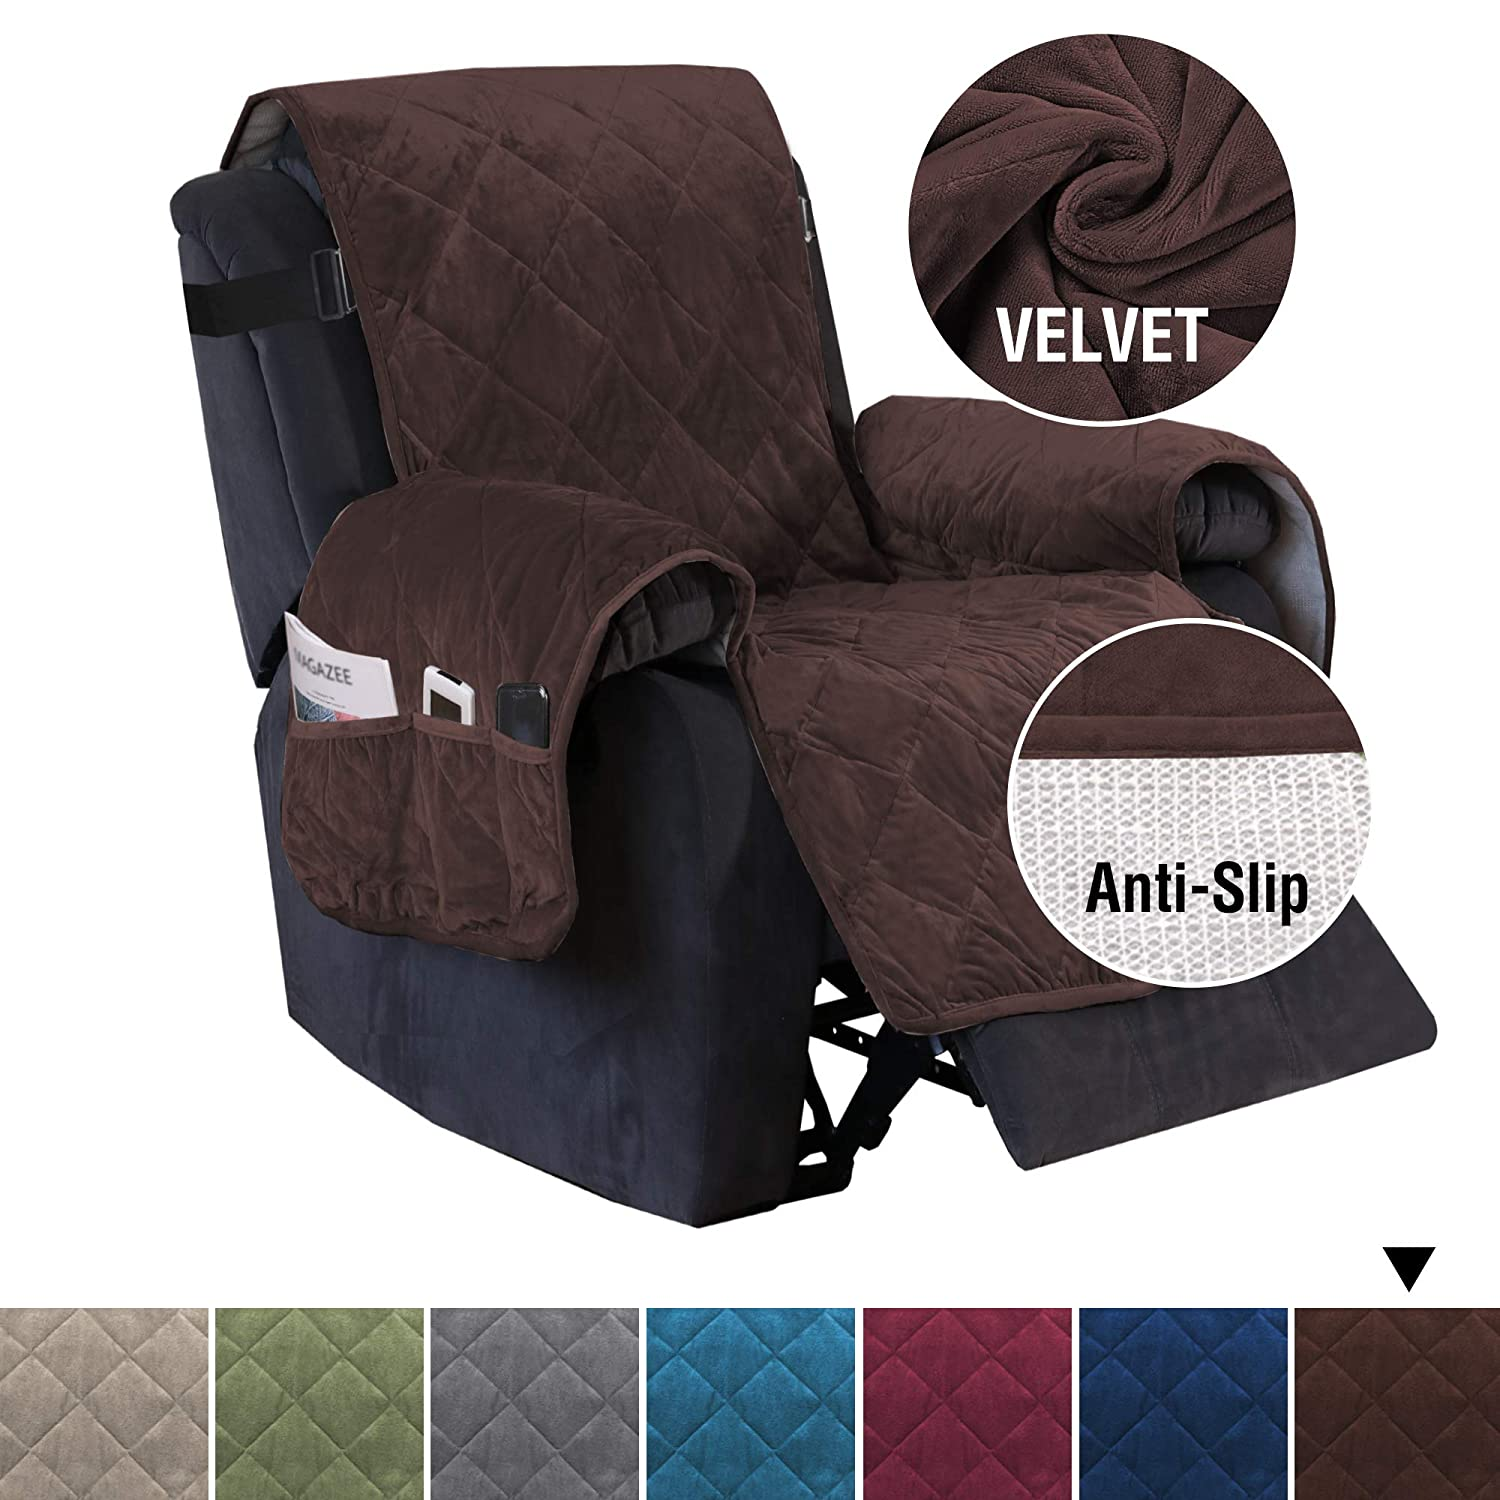 """H.VERSAILTEX Recliner Sofa Slipcover Slip Resistant Velvet Sofa Cover Furniture Protector, Seat Width Up to 28"""" Couch Shield, 2"""" Elastic Straps, Checked Pattern Recliner Slipcover (Recliner: Brown)"""